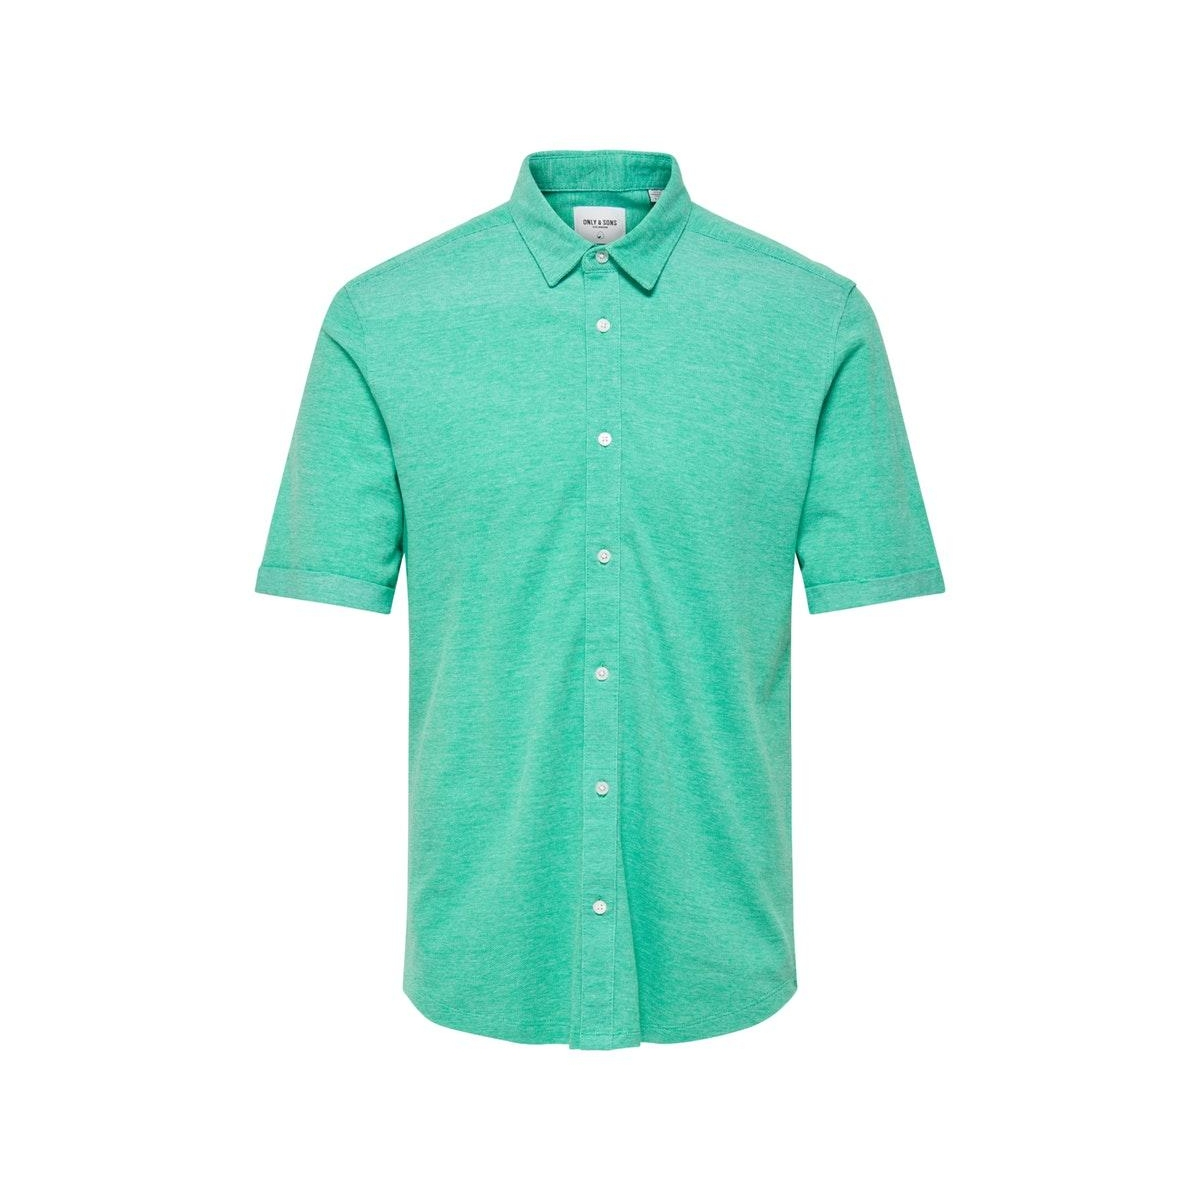 onscuton ss knitted melange shirt r 22011833 only & sons overhemd greenlake